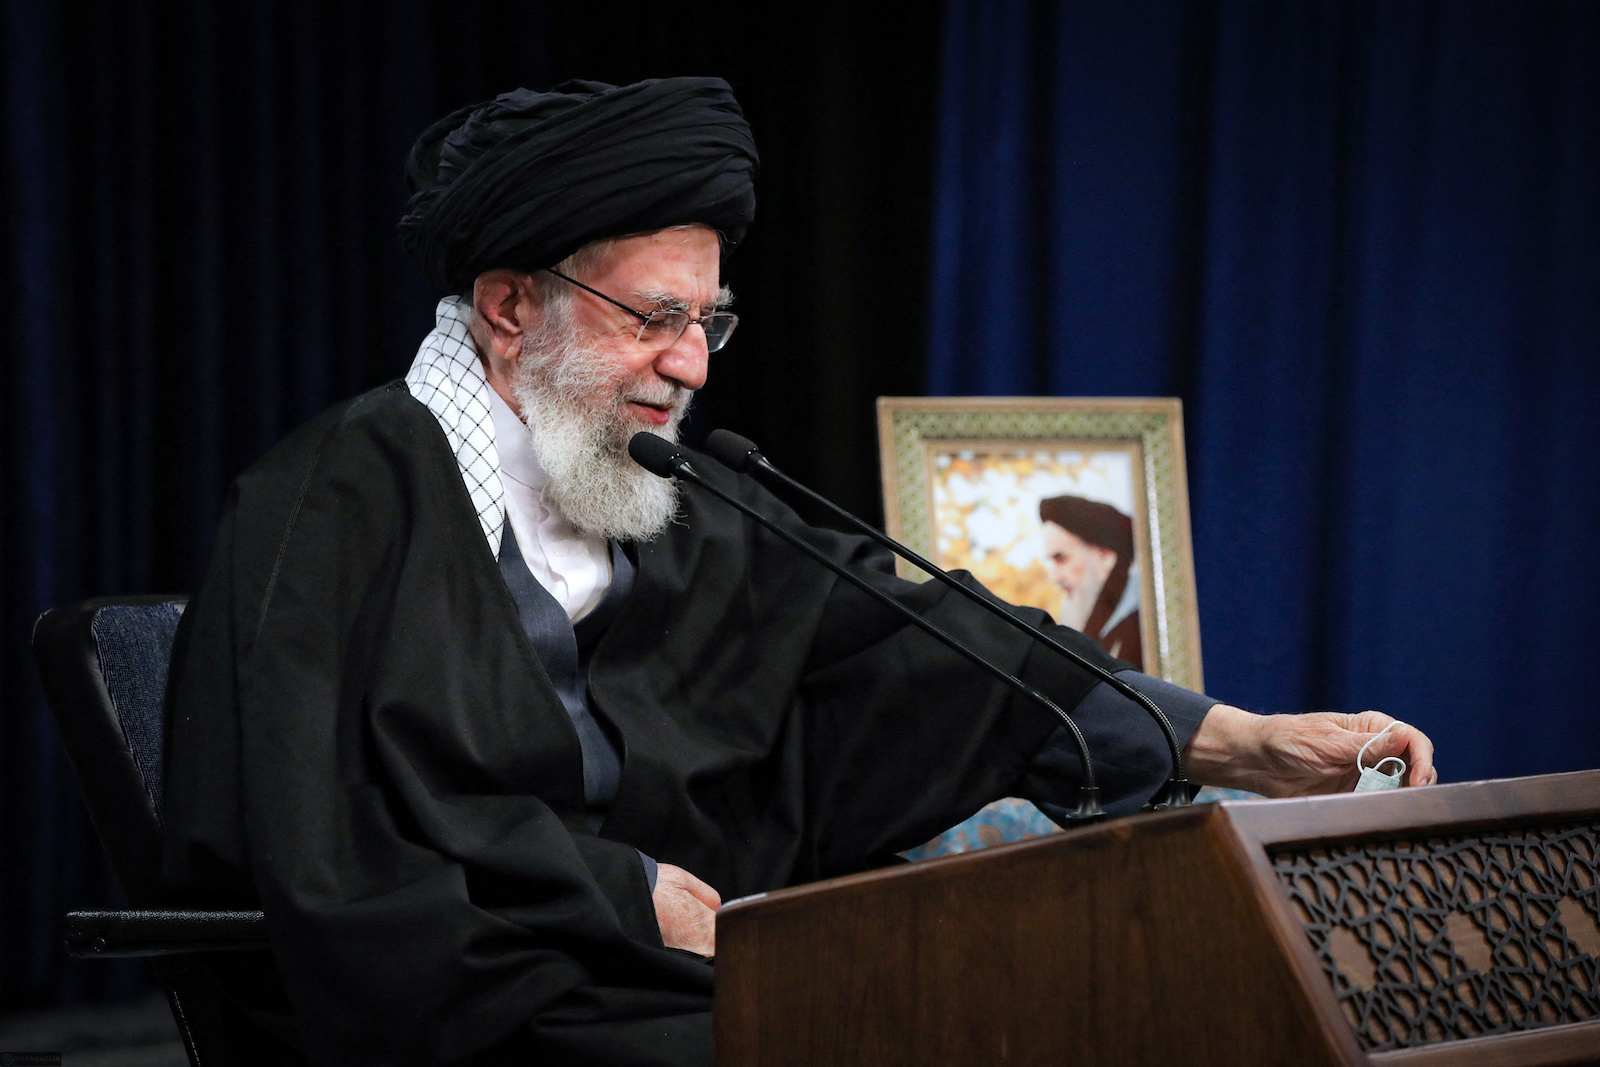 A handout picture provided by the office of Iran's Supreme Leader Ayatollah Ali Khamenei on January 8, 2021 shows him delivering a televised speech on the occasion of the 43rd anniversary of 1978 revolt in Qom which ignited the Iranian Revolution. Photo: AFP via KHAMENEI.IR